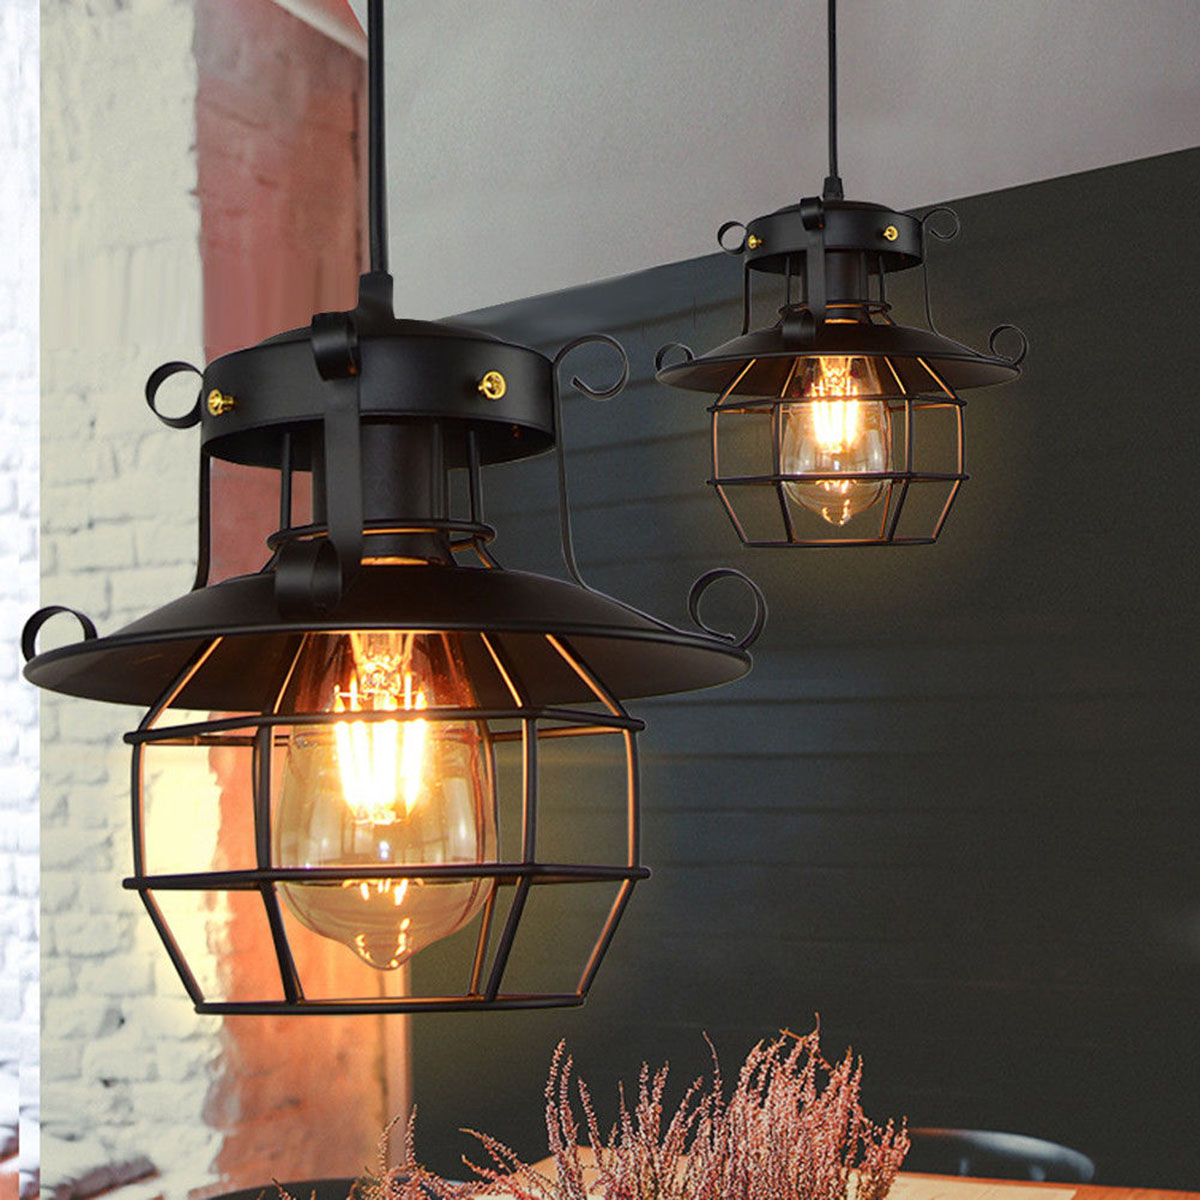 Vintage Pendant light Metal Industrial lamp Ceiling light Chandelier Fixtures Cage Edison Nordic Retro Loft Lamp Home Decoration